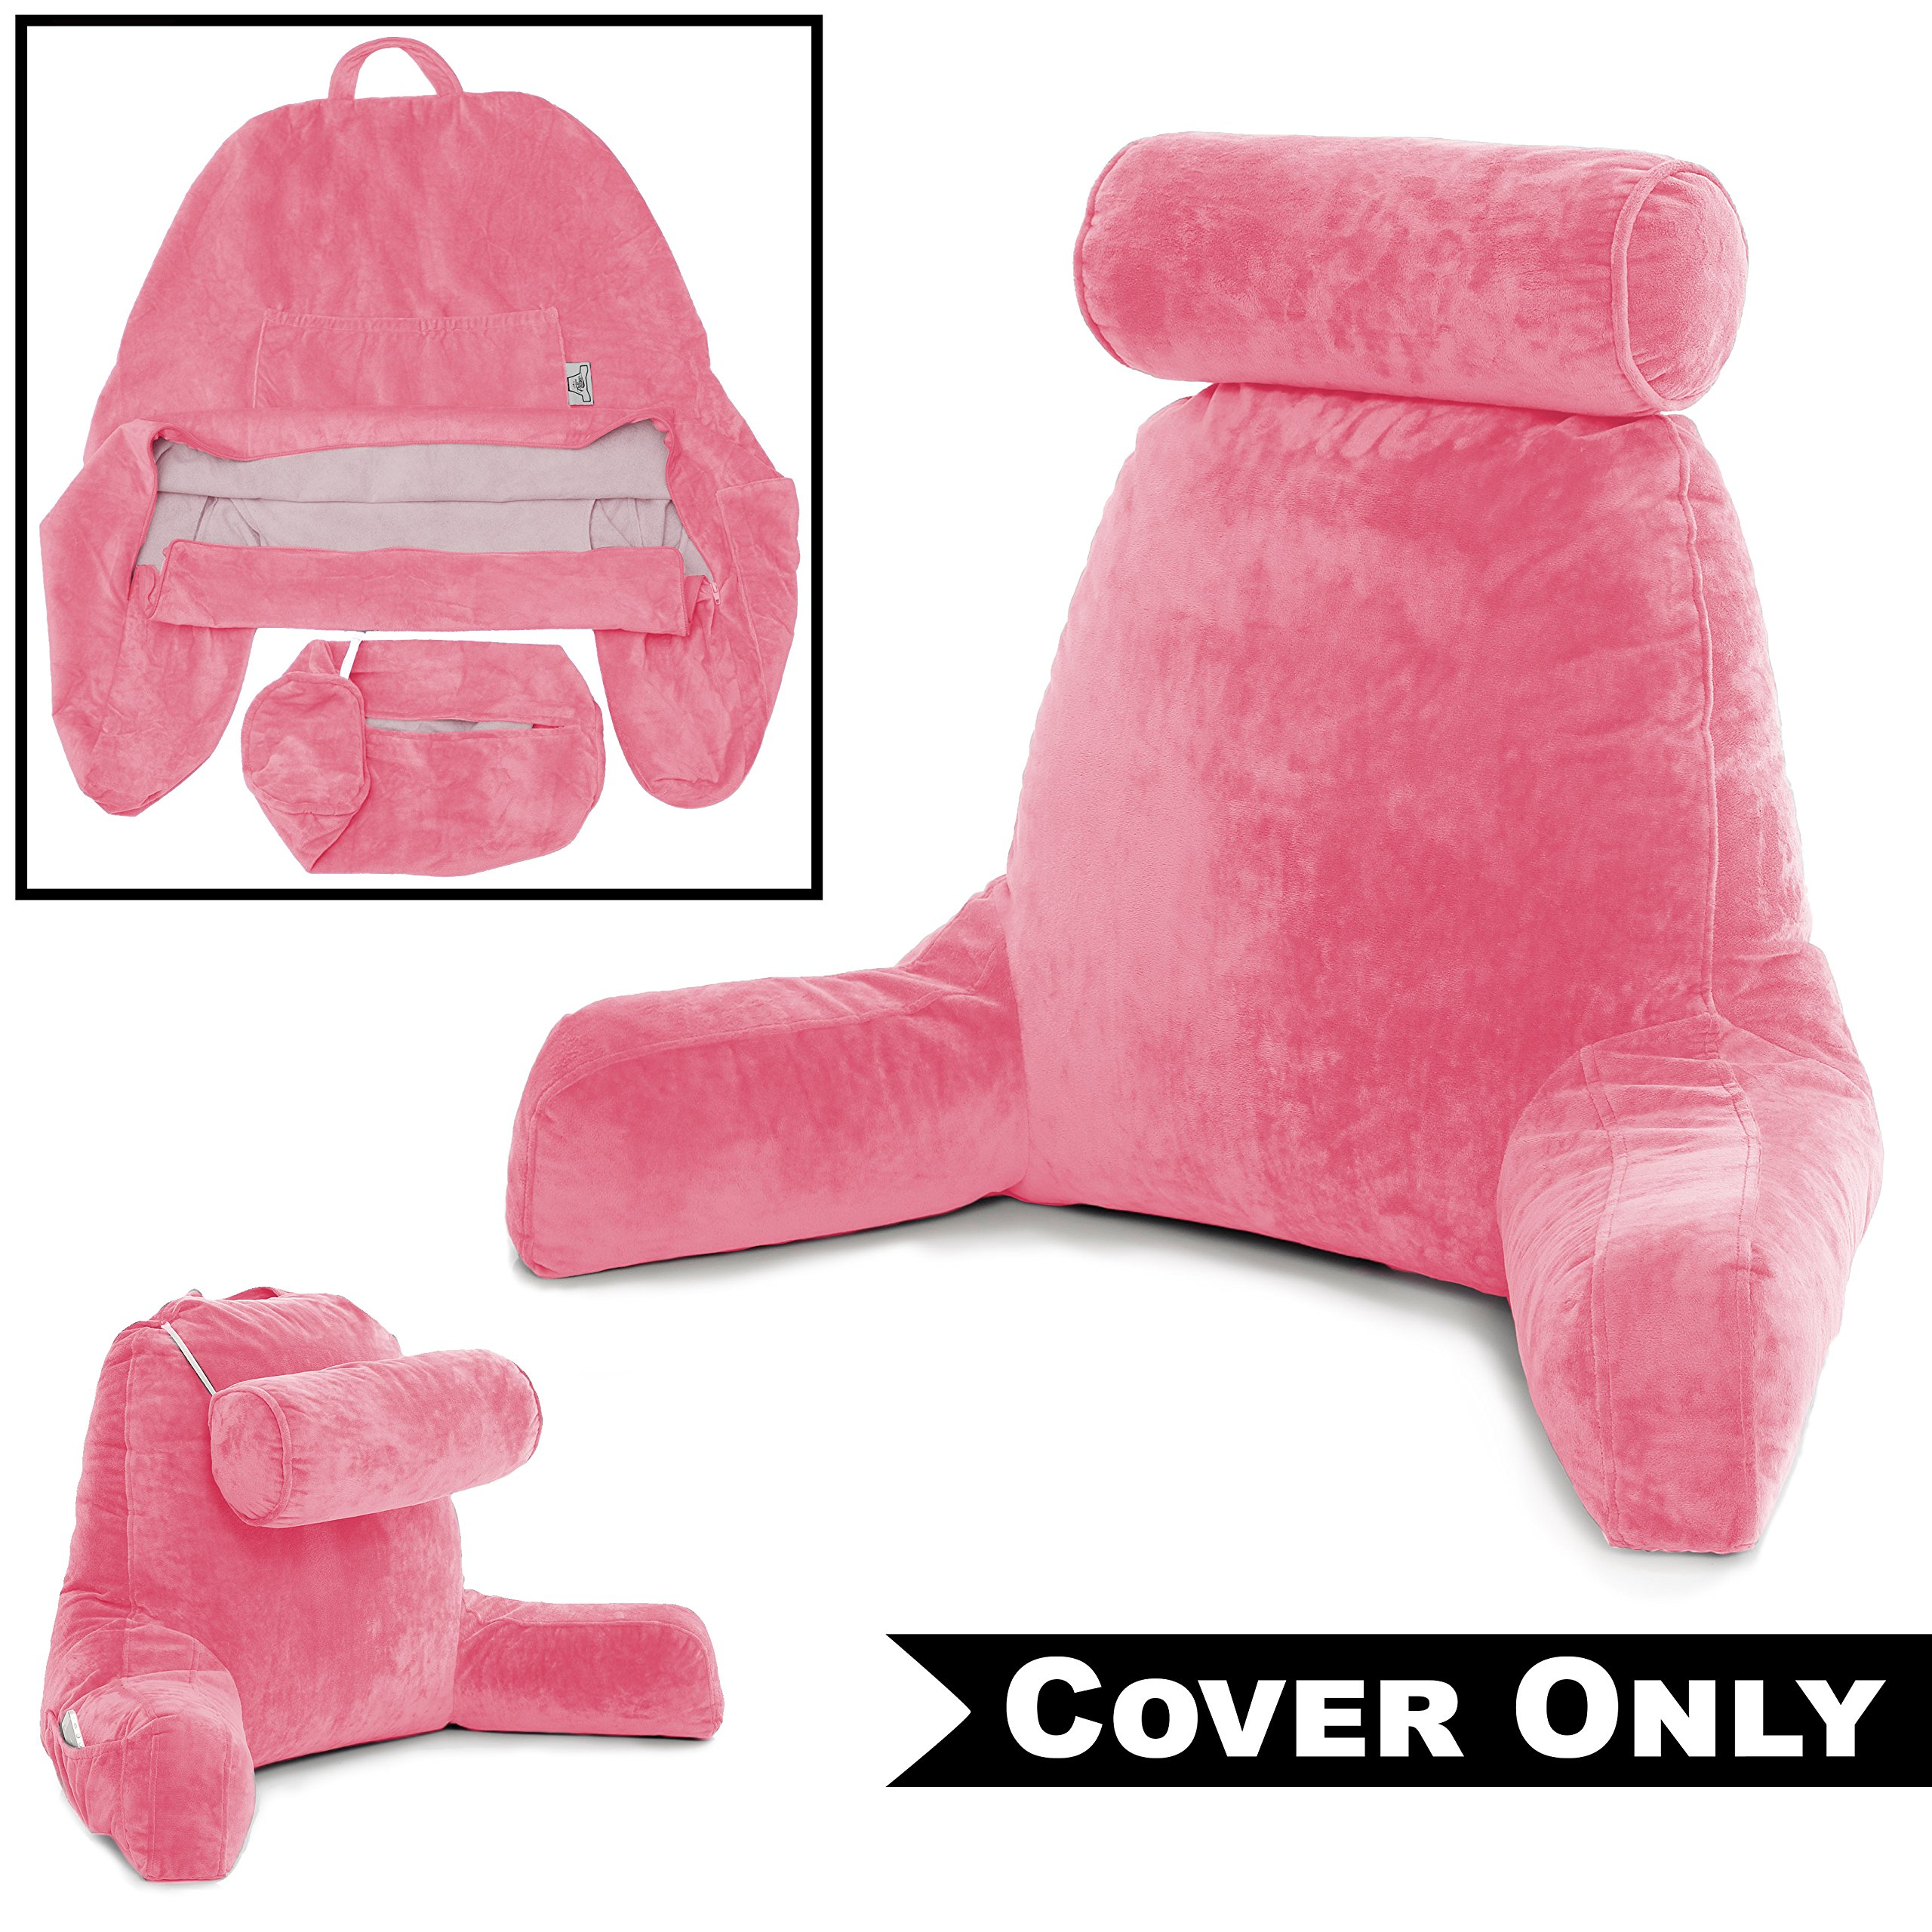 Husband Pillow Pink COVER ONLY - For the Bedrest Cover Set - Support Bed Backrest Covers, Micro Plush Cover Including Detachable Neck Roll Pillow Cover